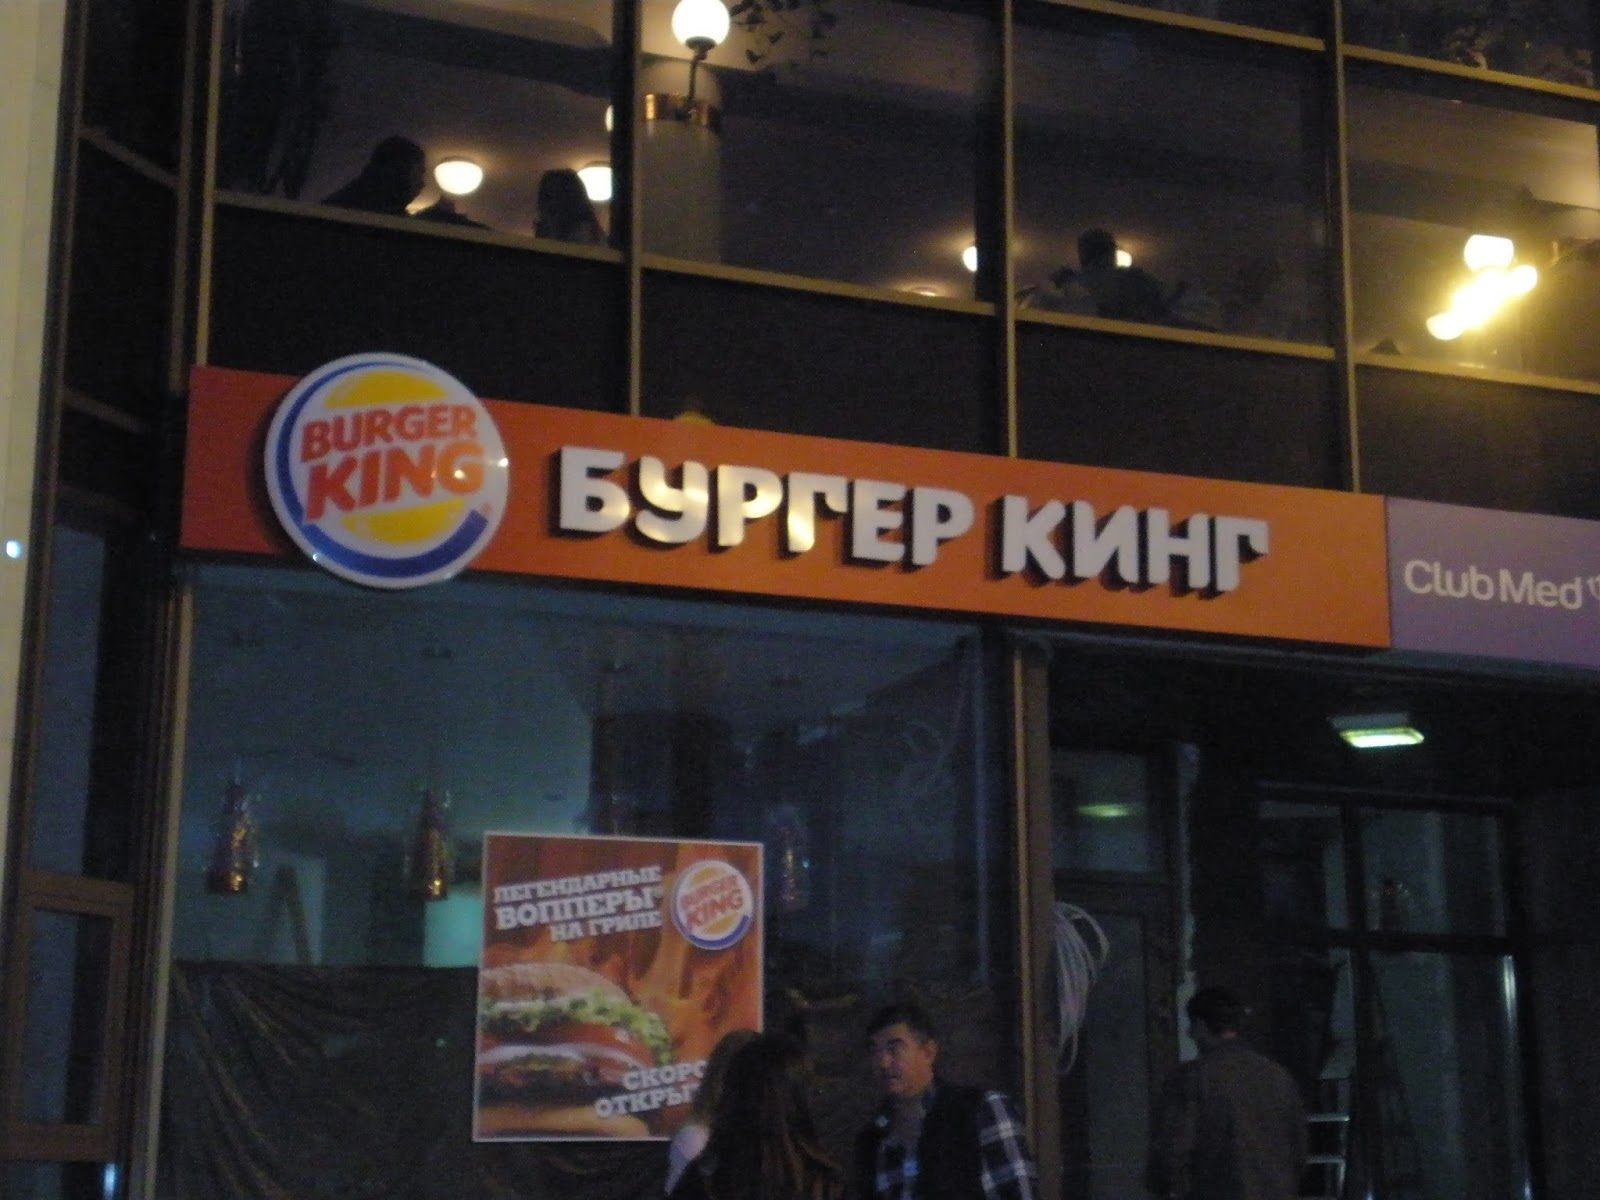 burger king, russia, moscow, eastern Europe